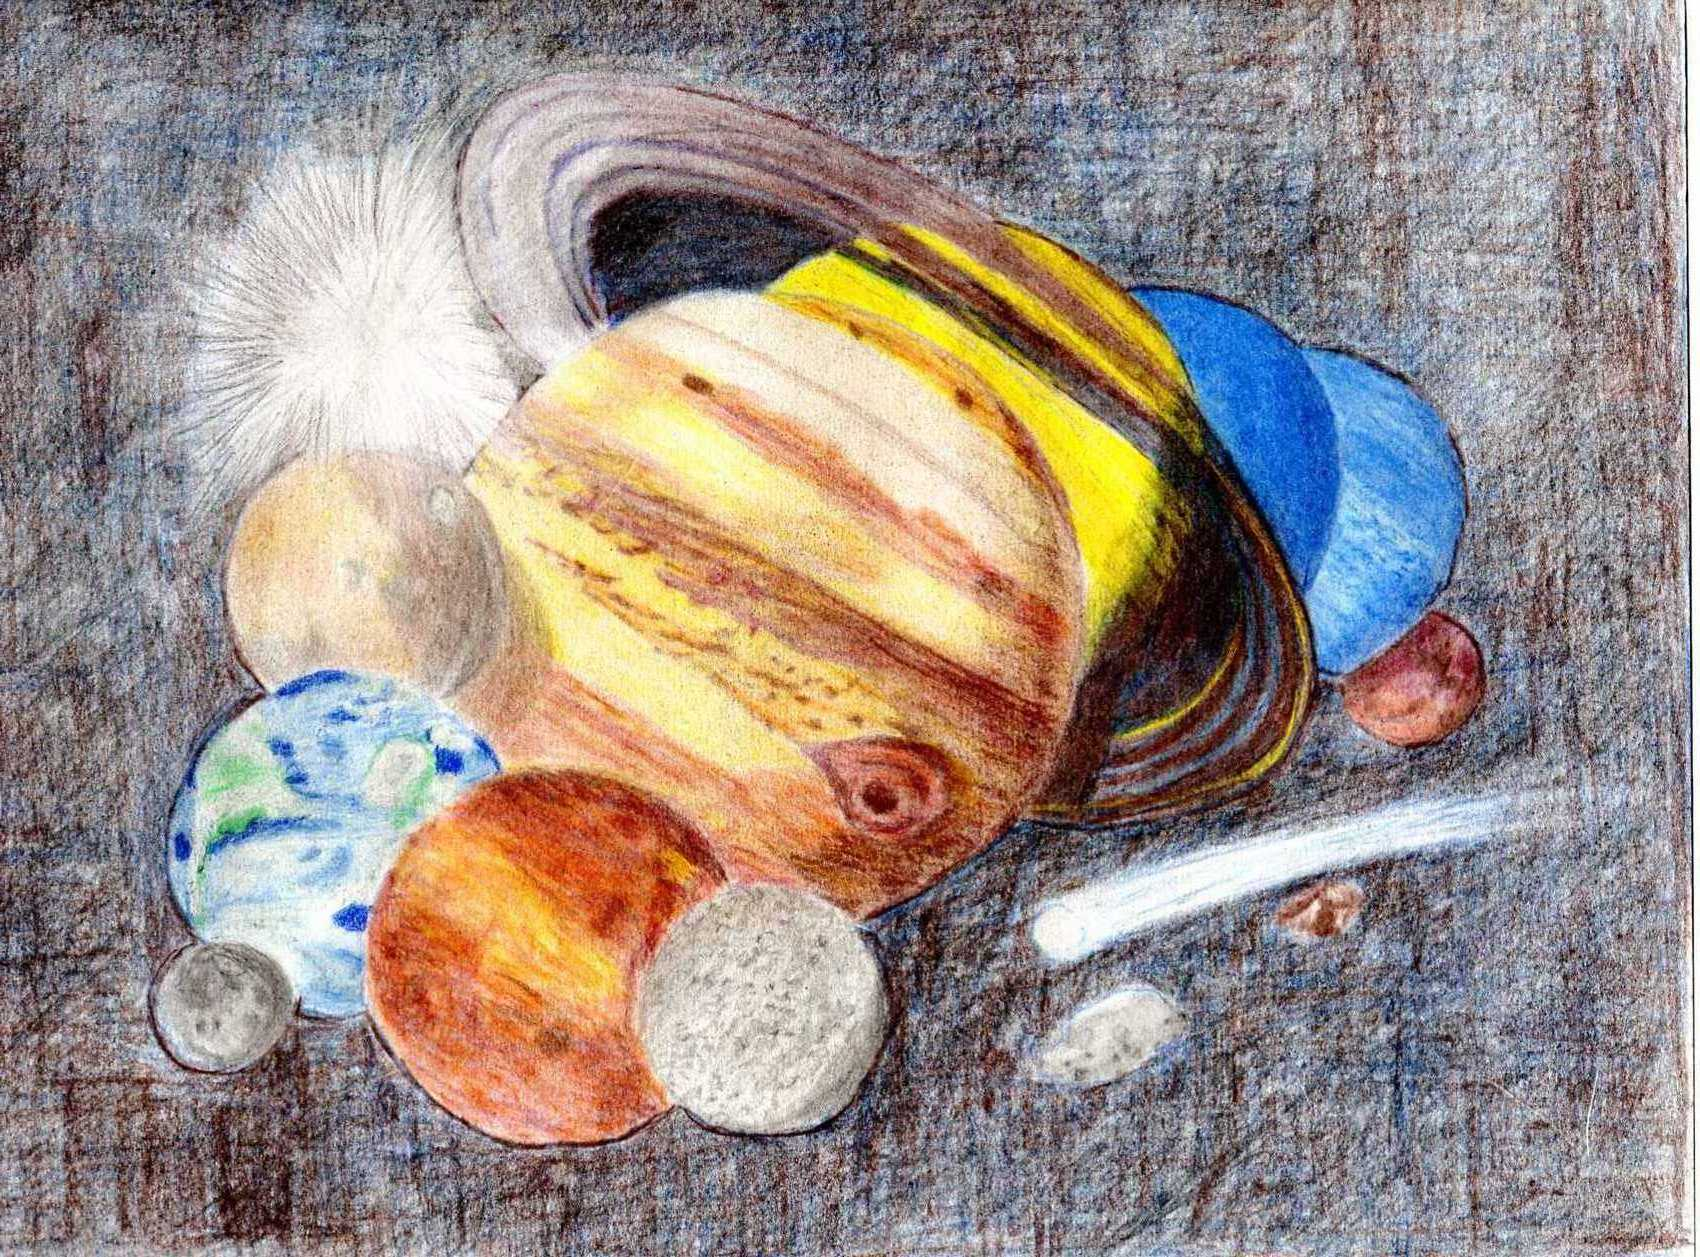 Drawn planets pencil drawing Colored  system Magazine in